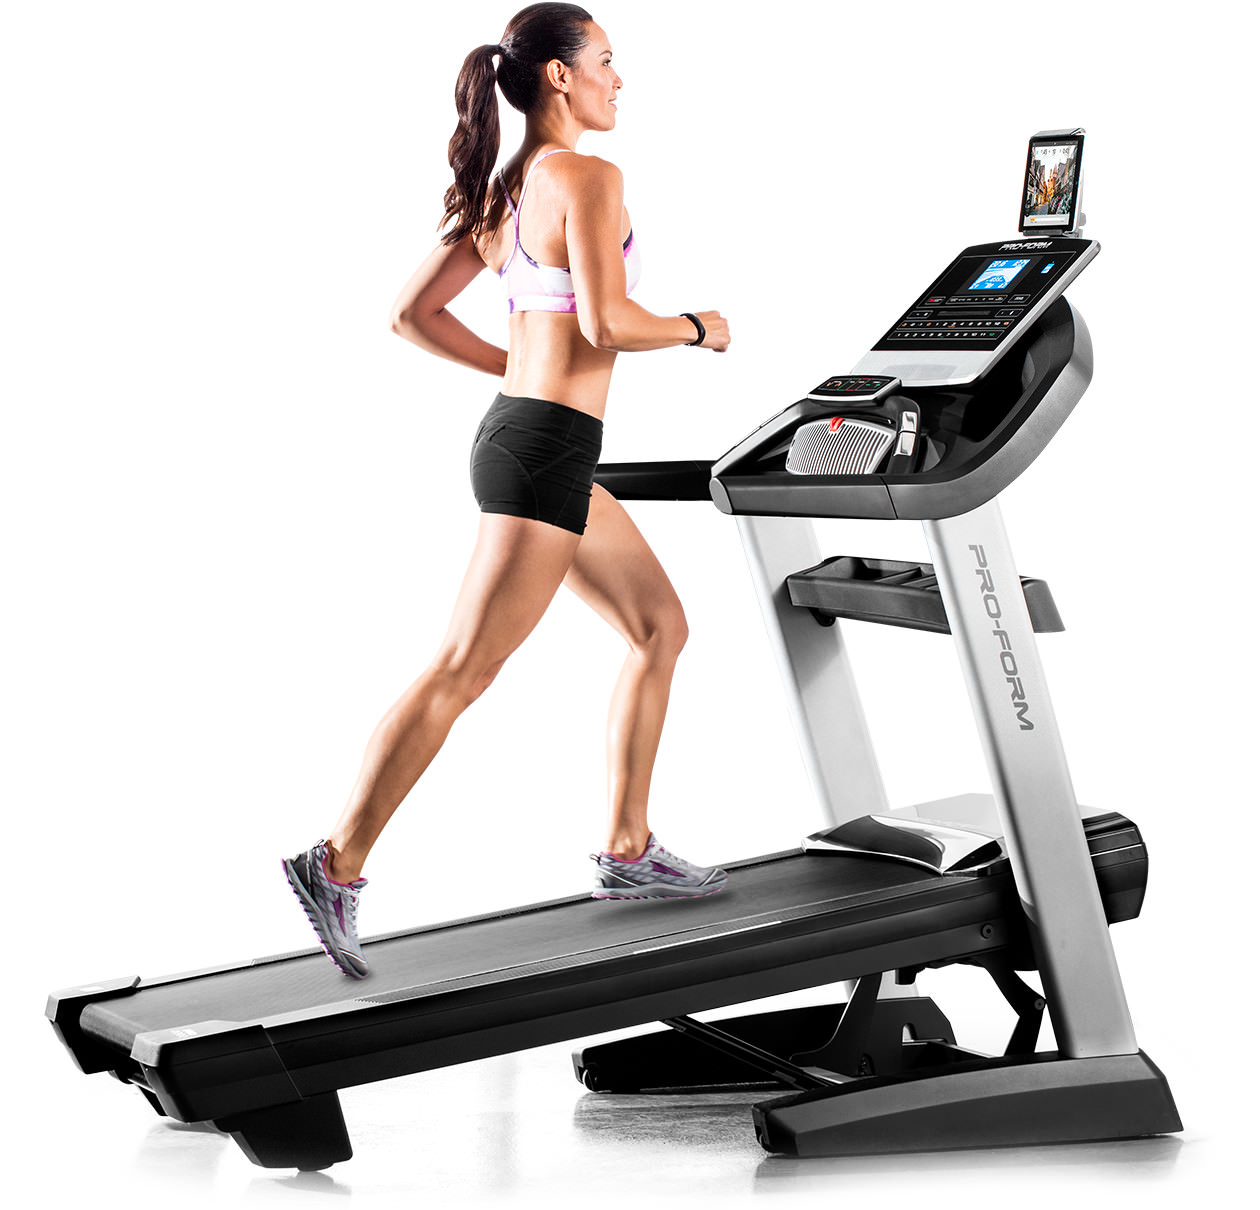 The Mobia Treadmill Has A Couple Things Going For It Right Off Bat You Notice Clean And Simple Ipod Esque Aesthetics From Frog Design